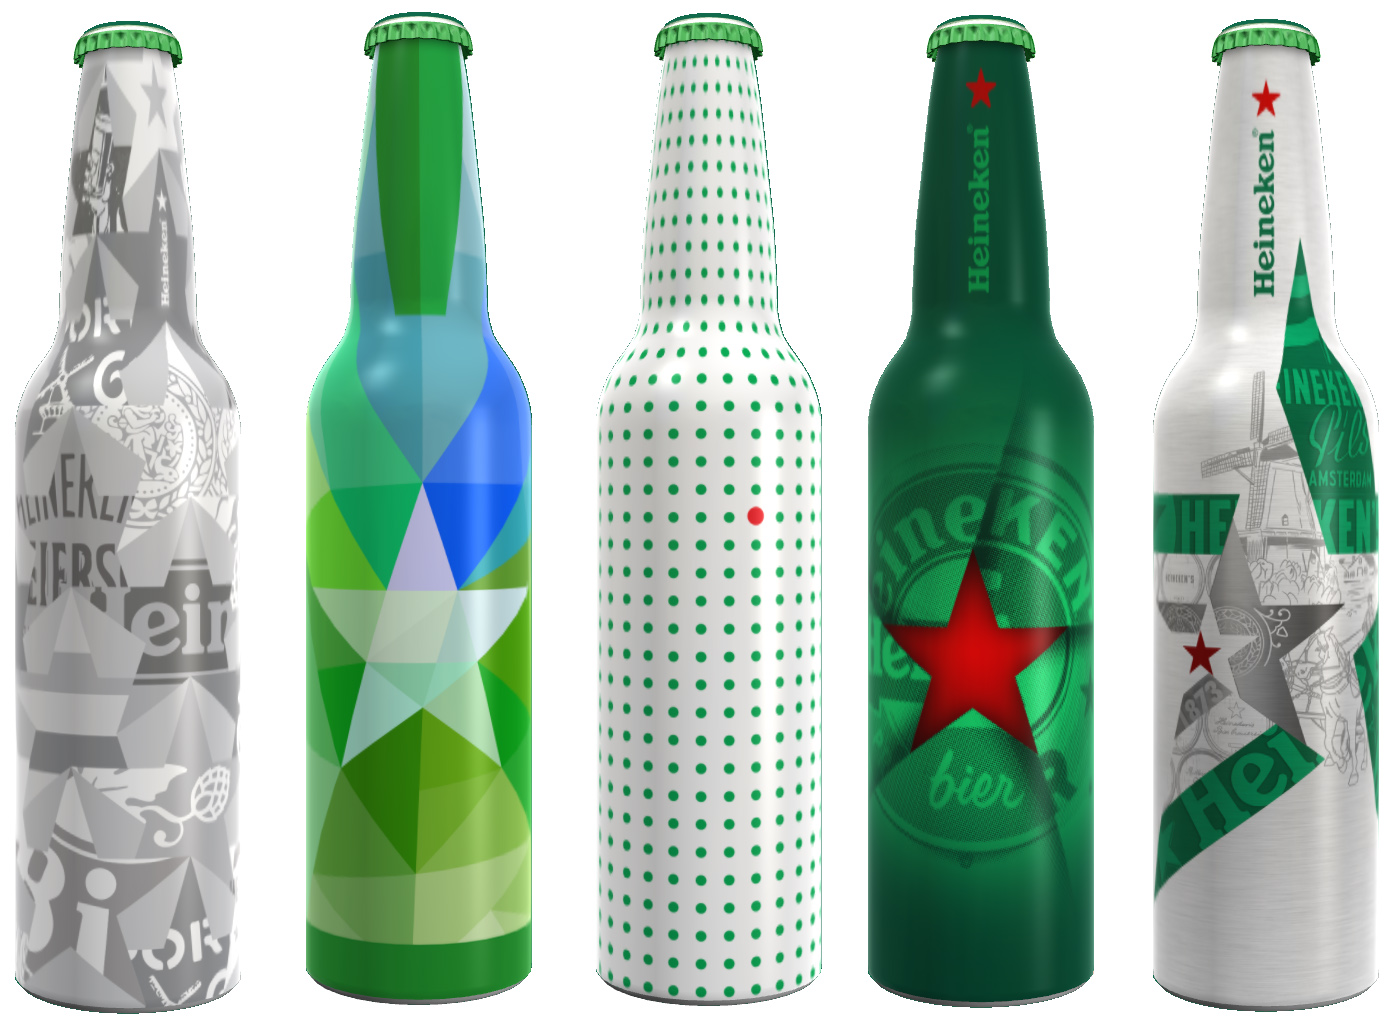 Which would you chose as Your Future Bottle?